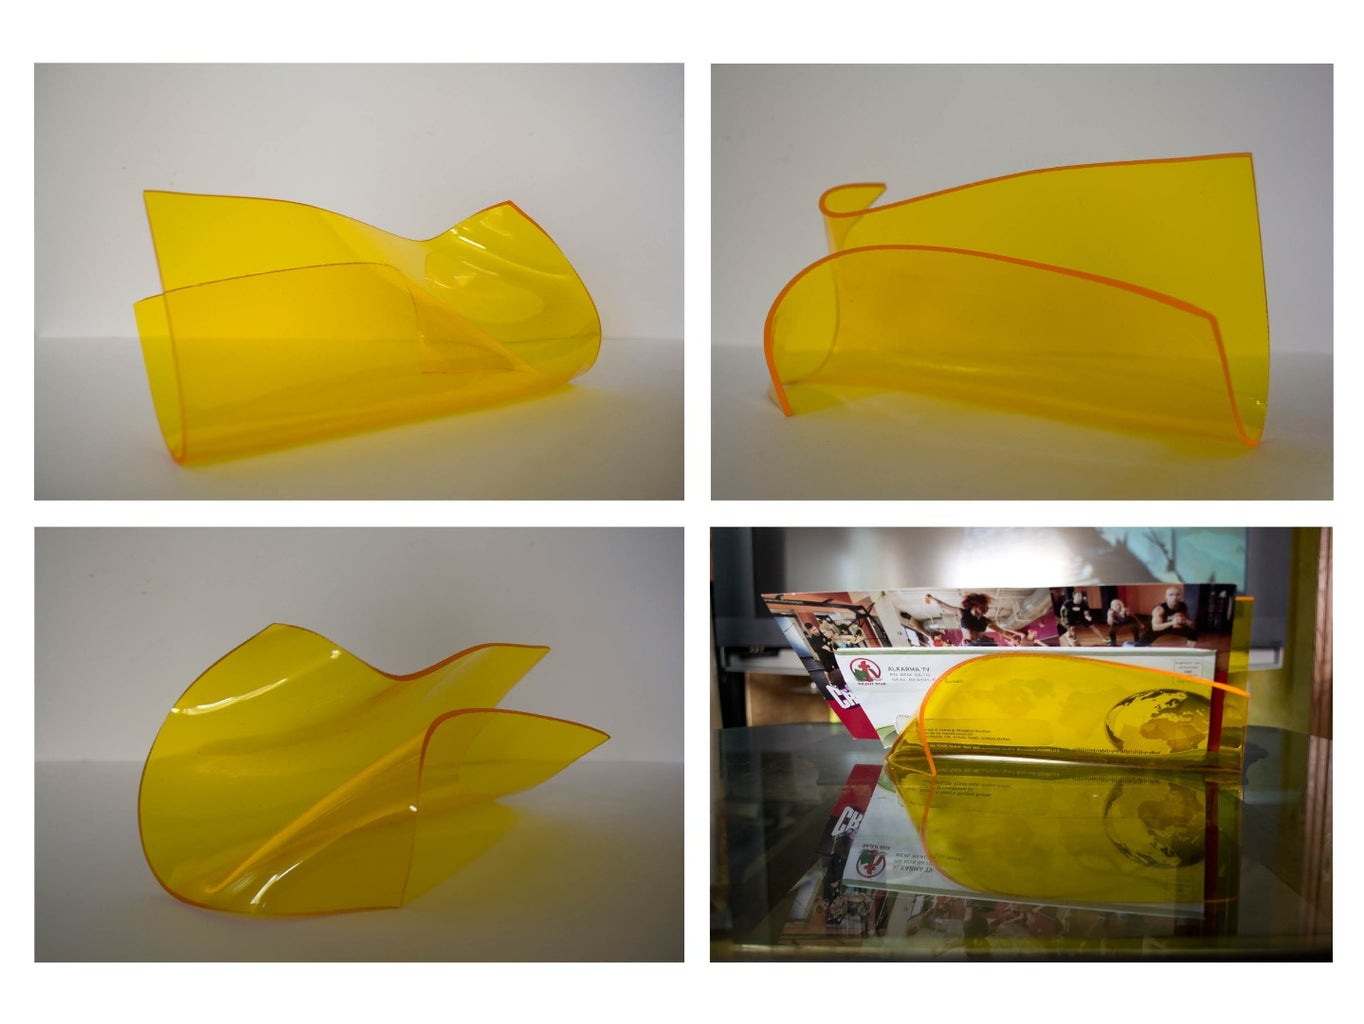 Acrylic Sculpture: a 10 Minutes Hand Project